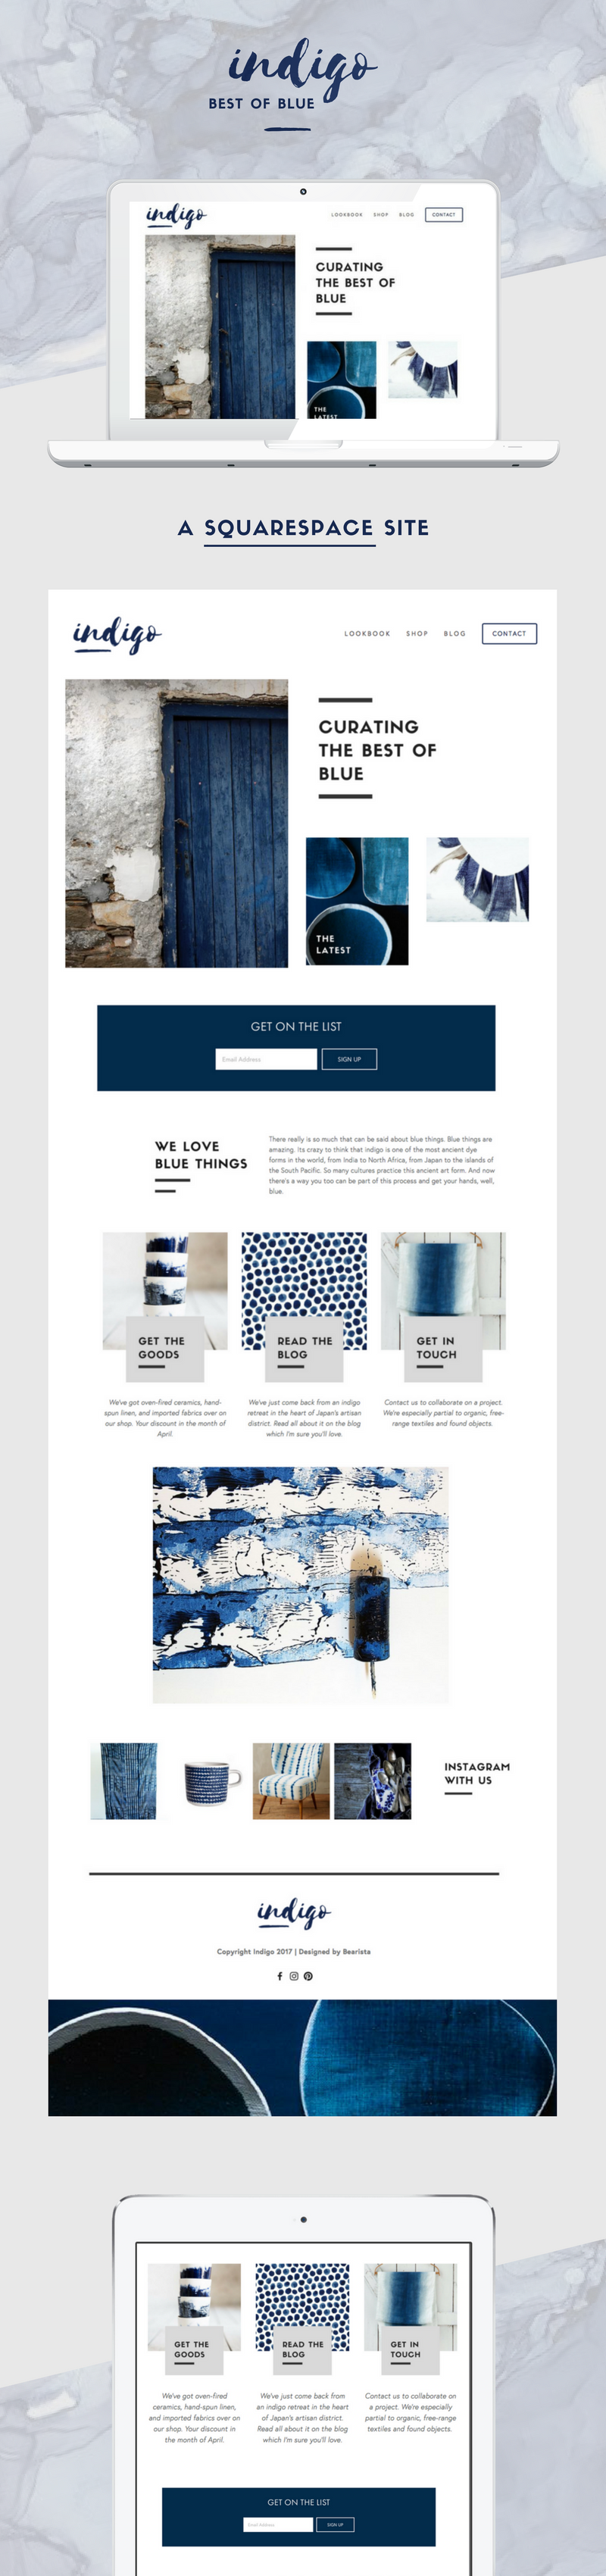 Long web graphic for 'Indigo' web design concept.